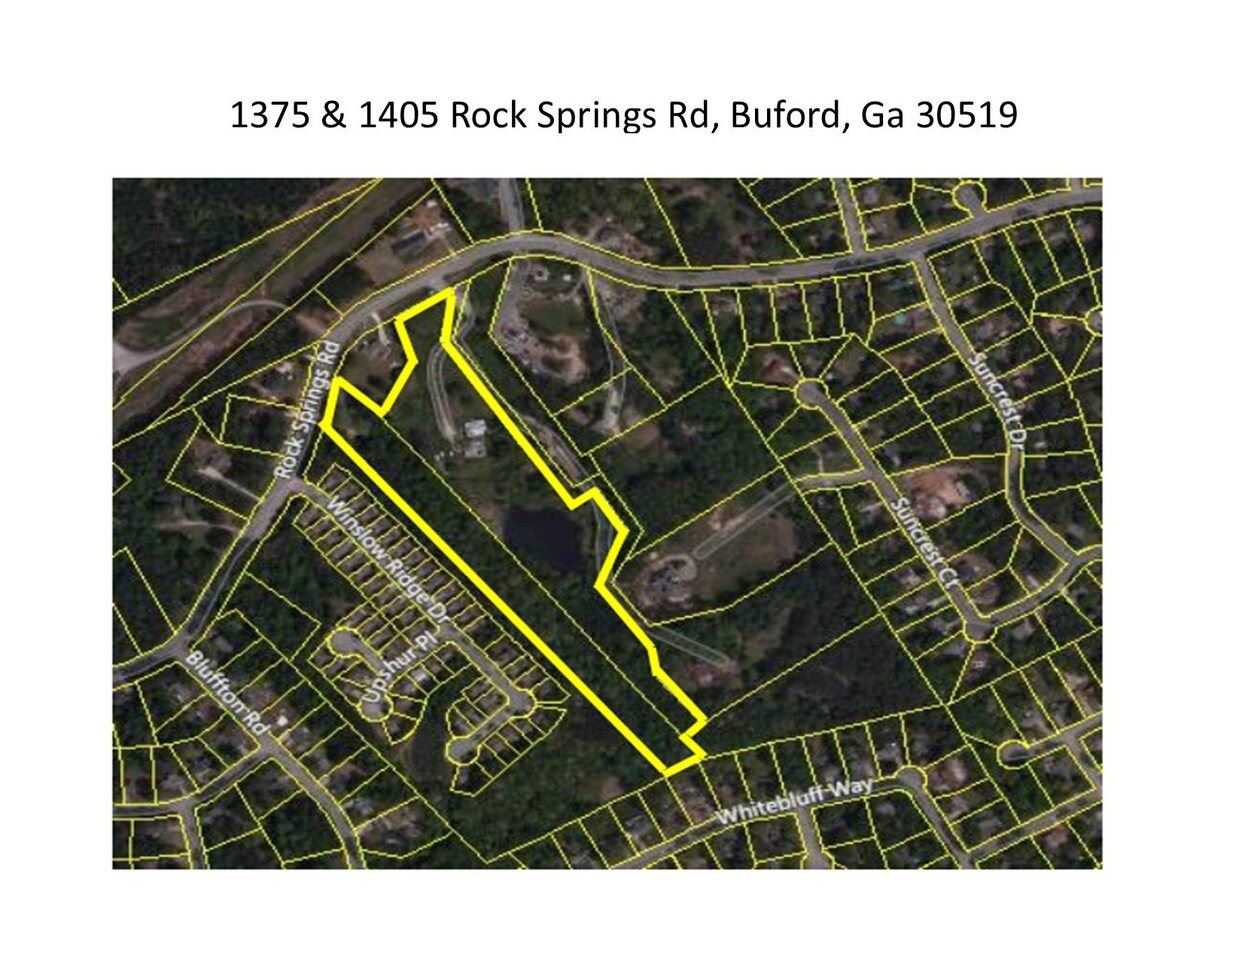 1405 Rock Springs Rd, Buford, GA 30519 - MLS#: 8856281